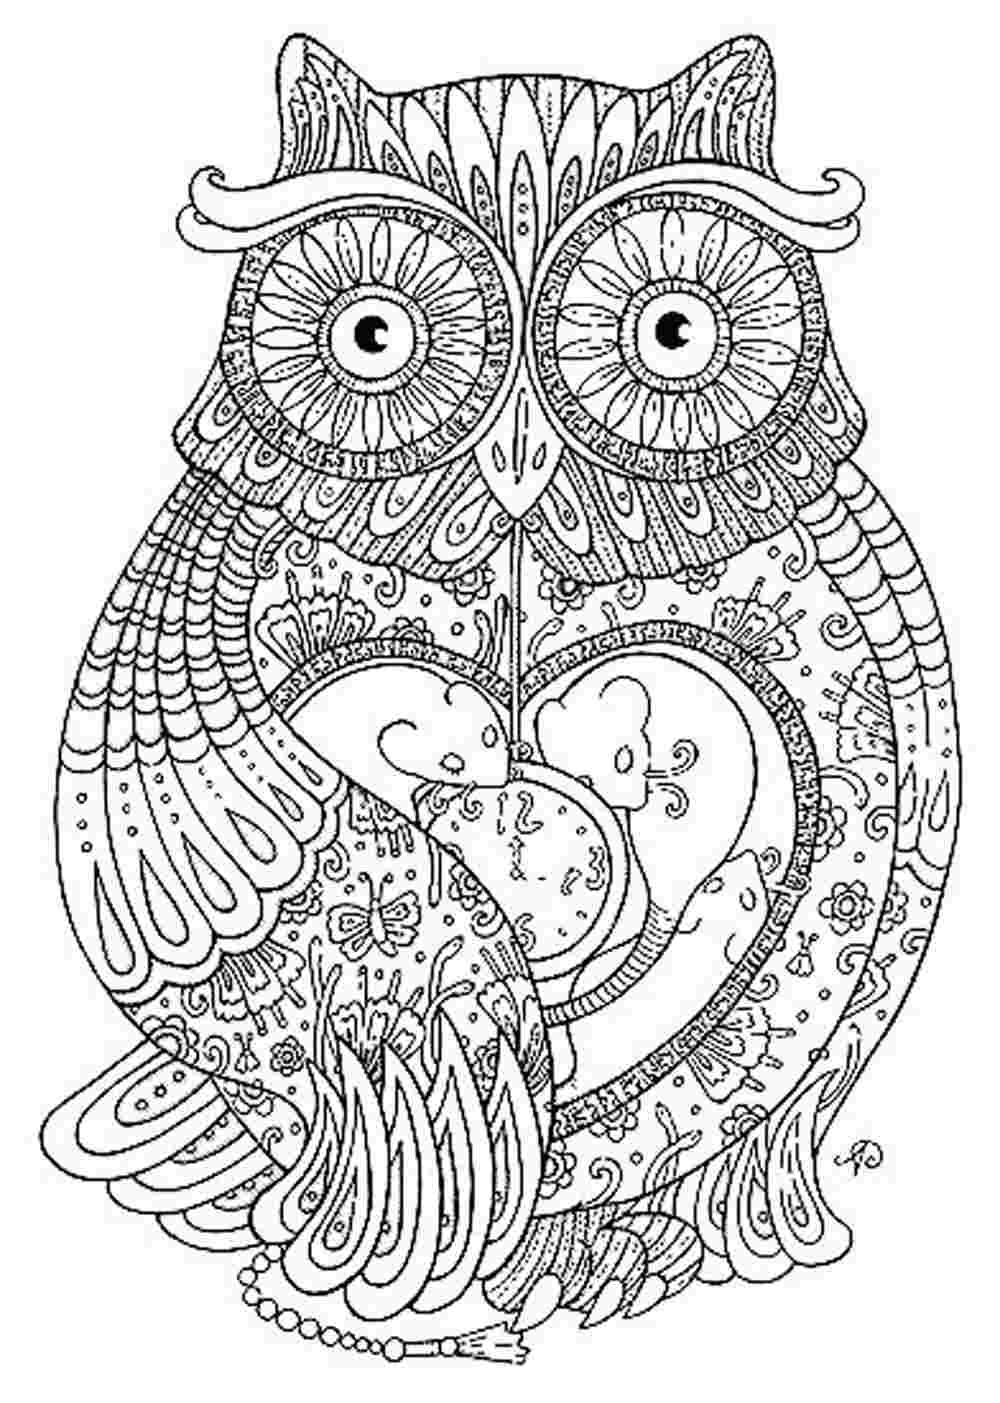 Owl_Coloring_Pages_For_Adults_01